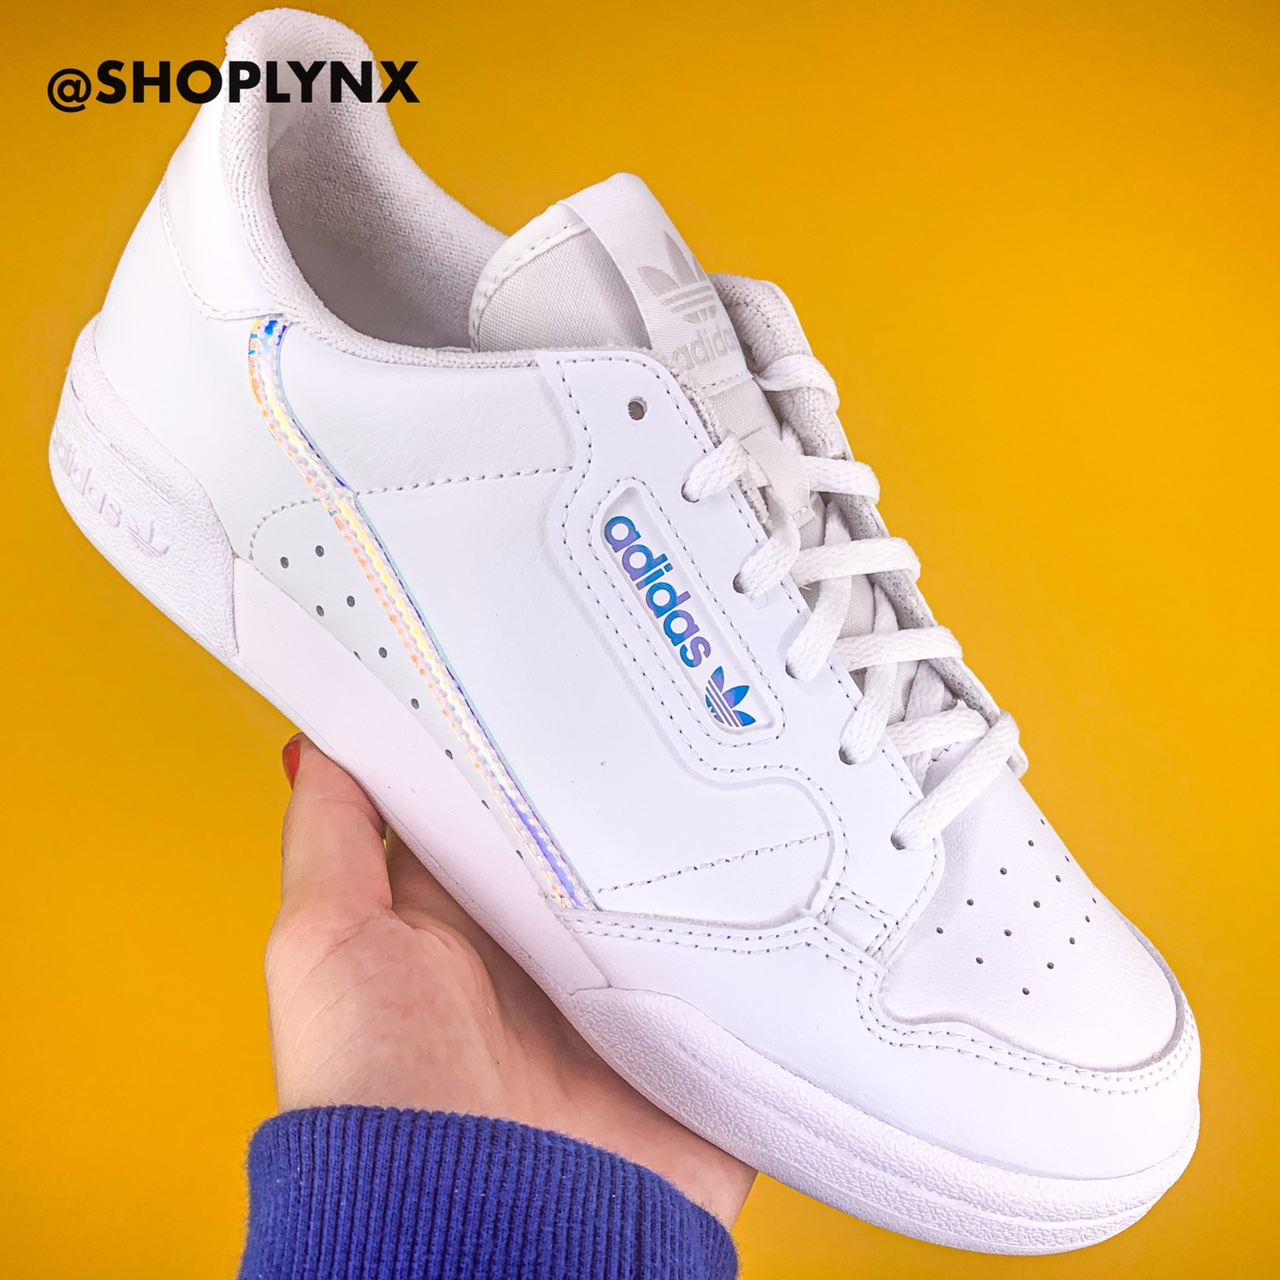 Adidas Continental 80 White Holographic